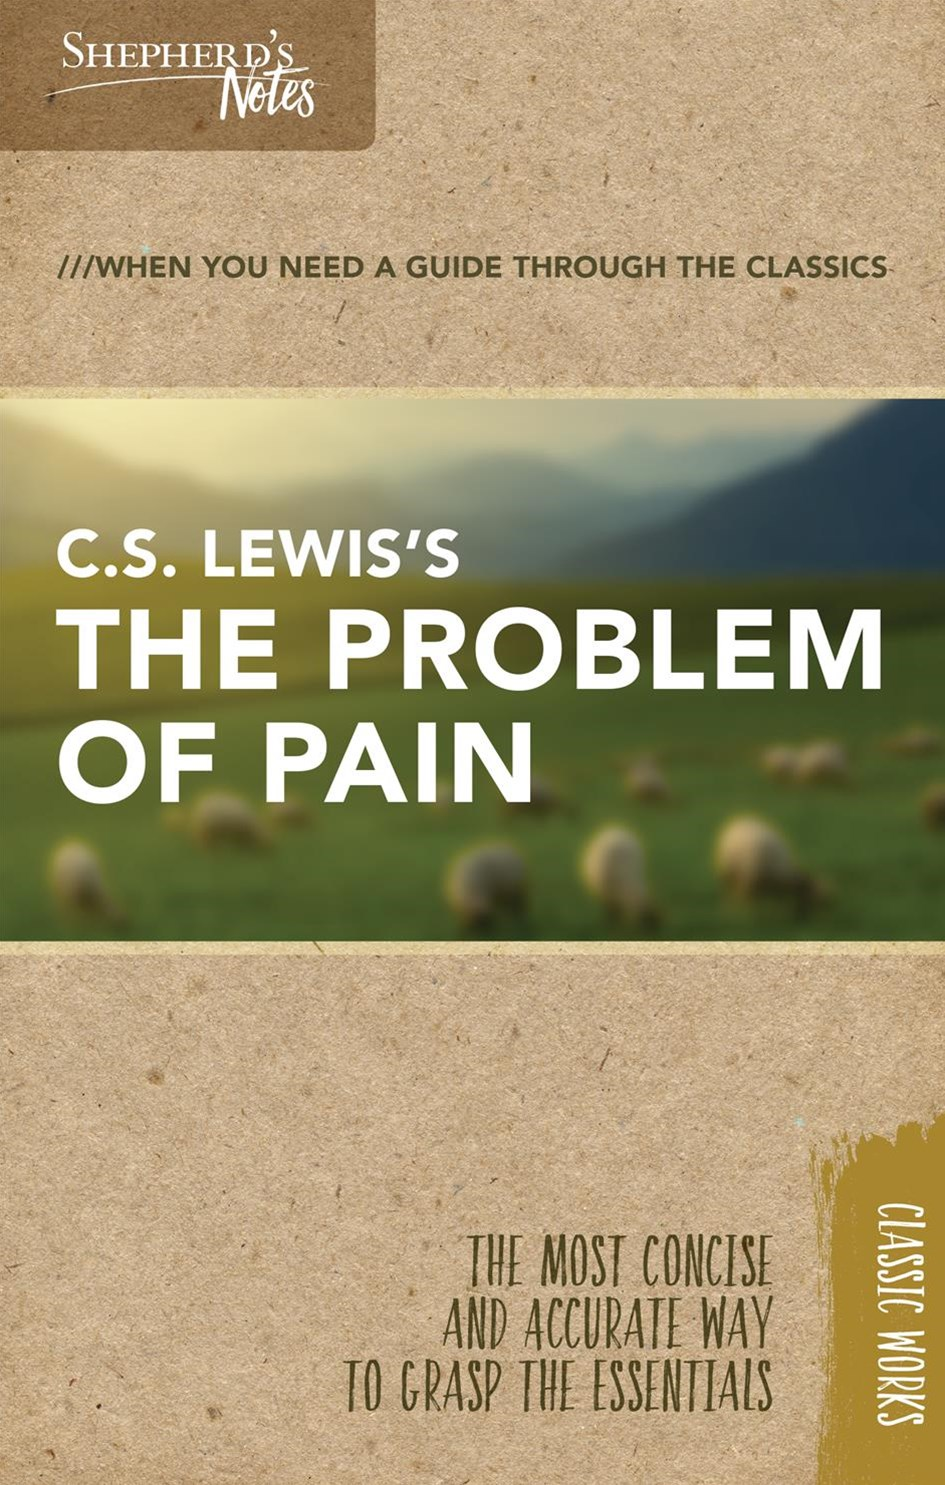 Shepherd's Notes the Problem of Pain